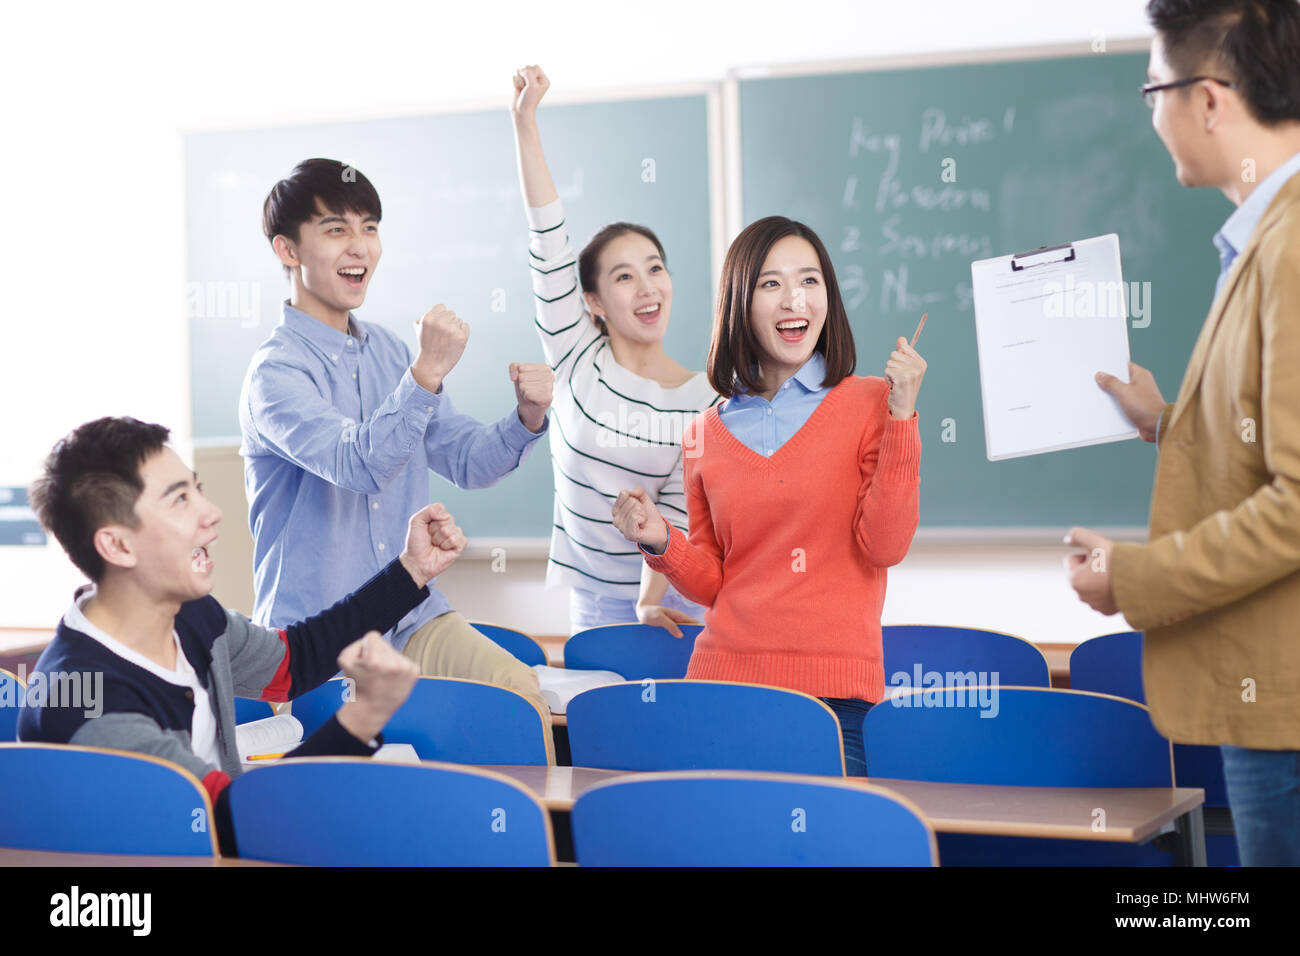 The excitement of teachers and students - Stock Image